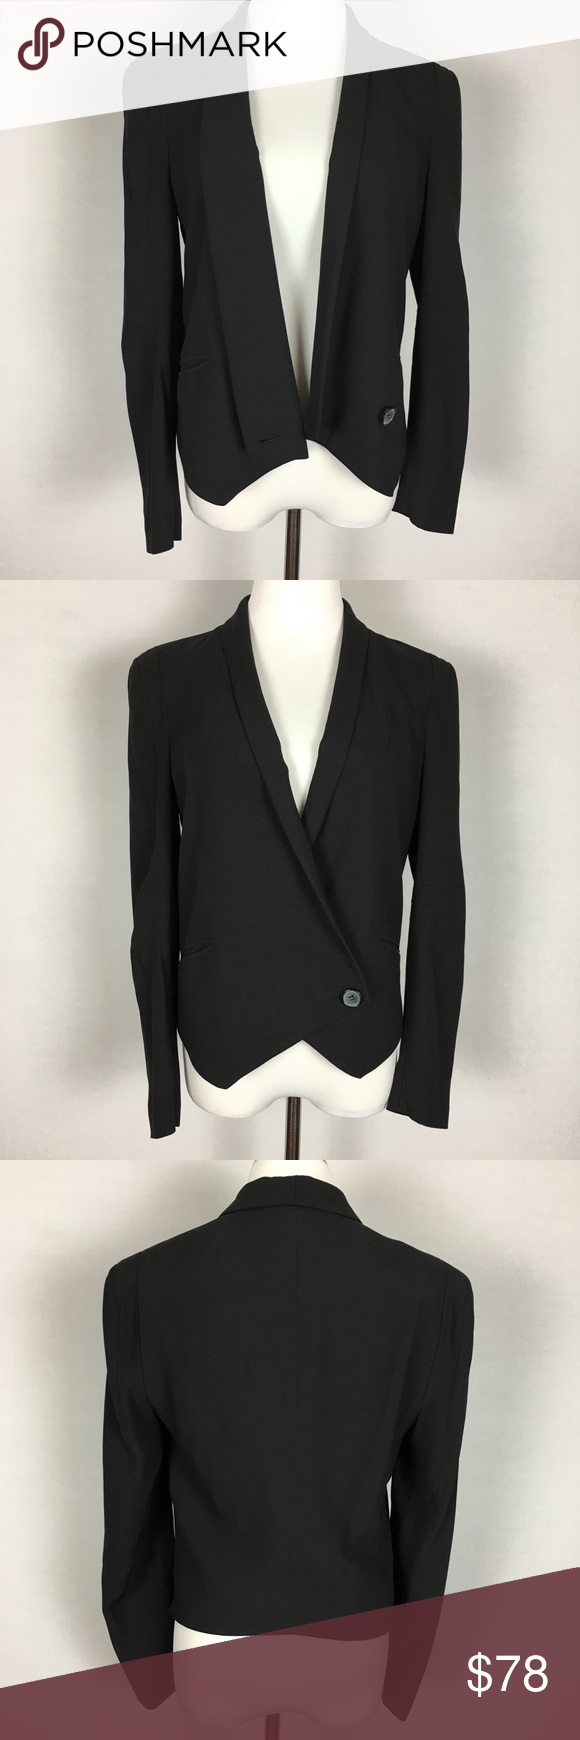 "Rebecca Minkoff ""Becky"" 100% Silk Tuxedo Blazer Versatile and stylish, this luxurious blazer is a celebrity favorite! Black Rebecca Minkoff ""Becky"" one button tuxedo blazer. Shell and lining are 100% silk. Size medium. In excellent condition with no flaws!  Measurements (Measured across while laid flat.) Waist with button closed: 17.5 Length from back of neck to bottom hem:19"" Rebecca Minkoff Jackets & Coats Blazers"